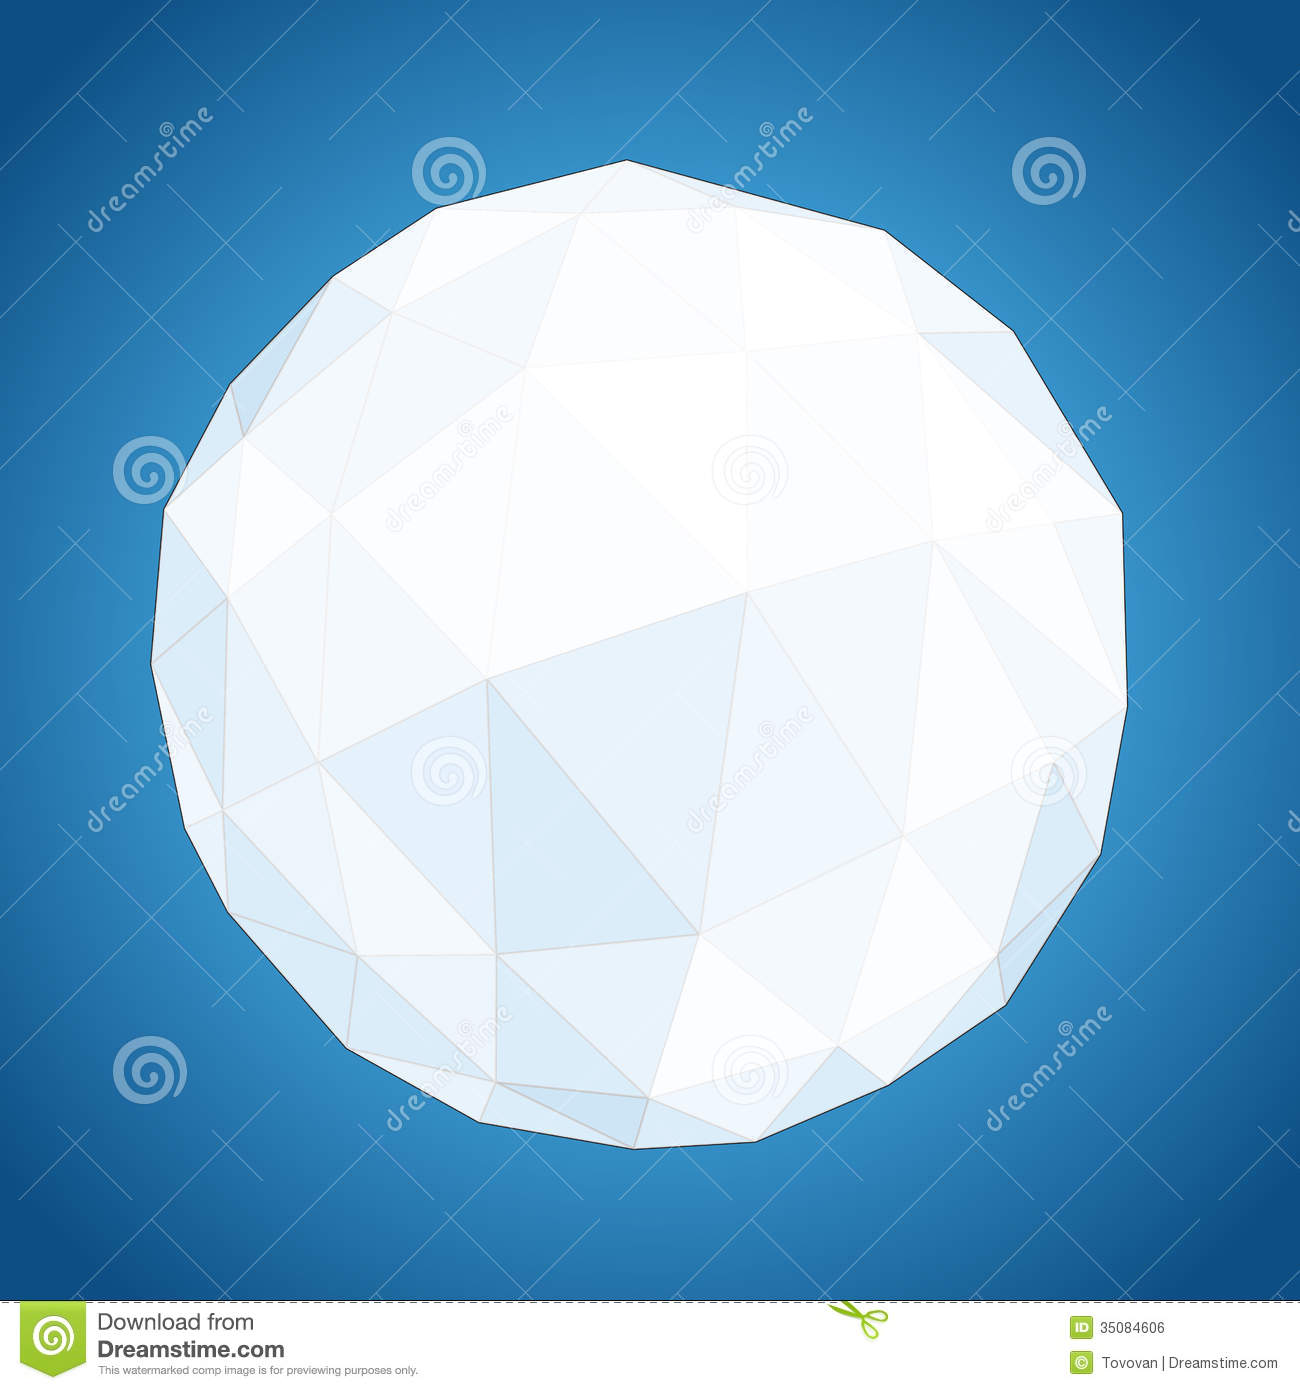 Abstract Geometric Paper Origami Sphere Royalty Free Stock ... - photo#47